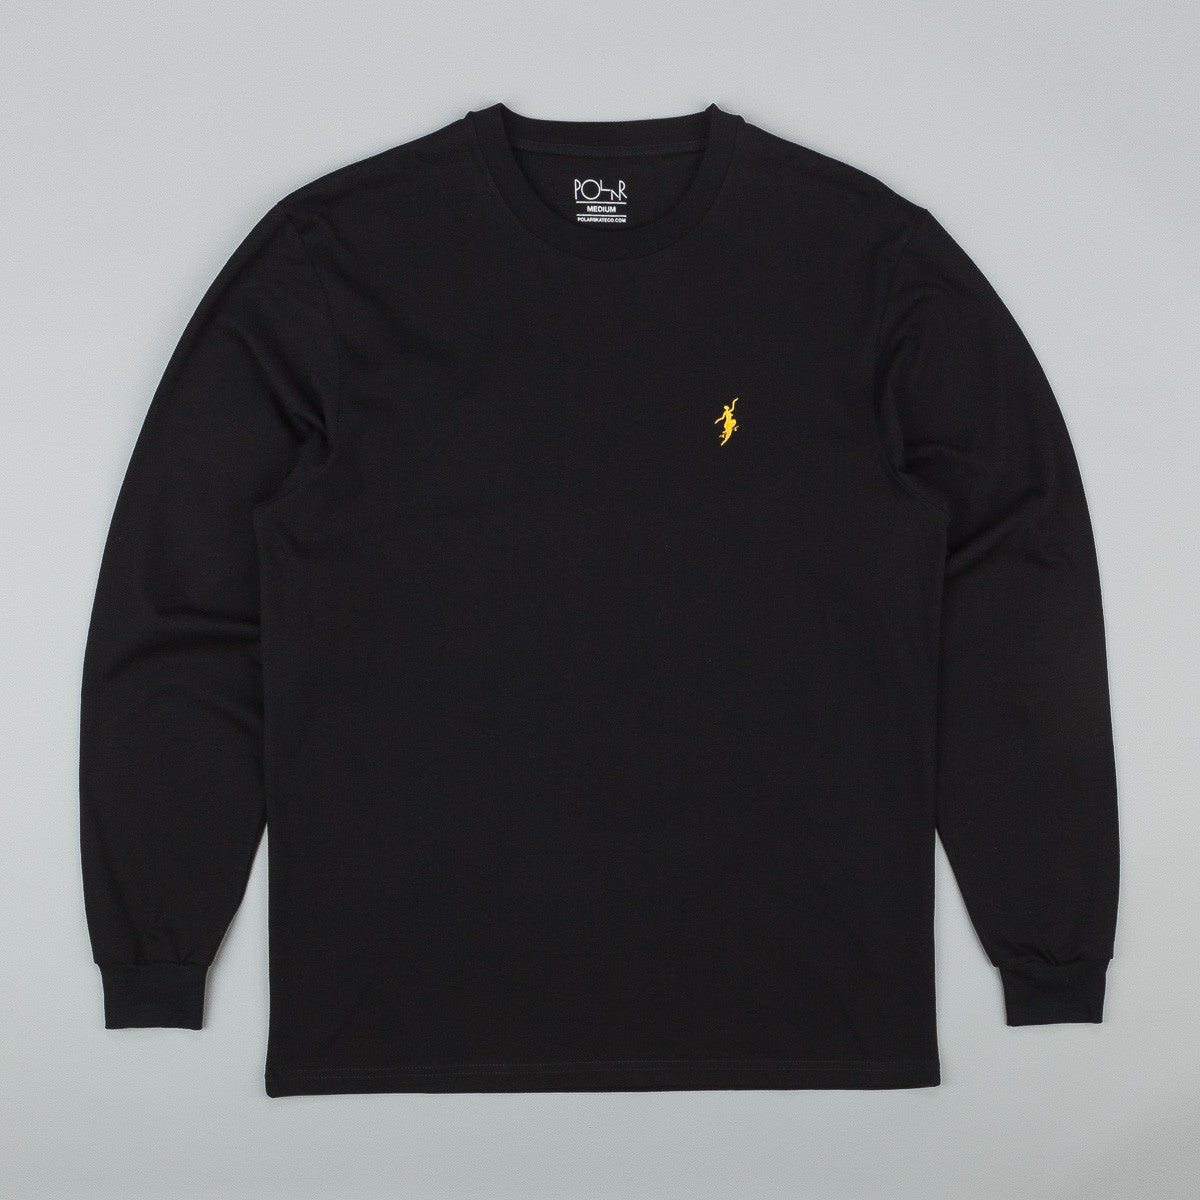 Polar No Comply Longsleeve T-Shirt - Black / Yellow